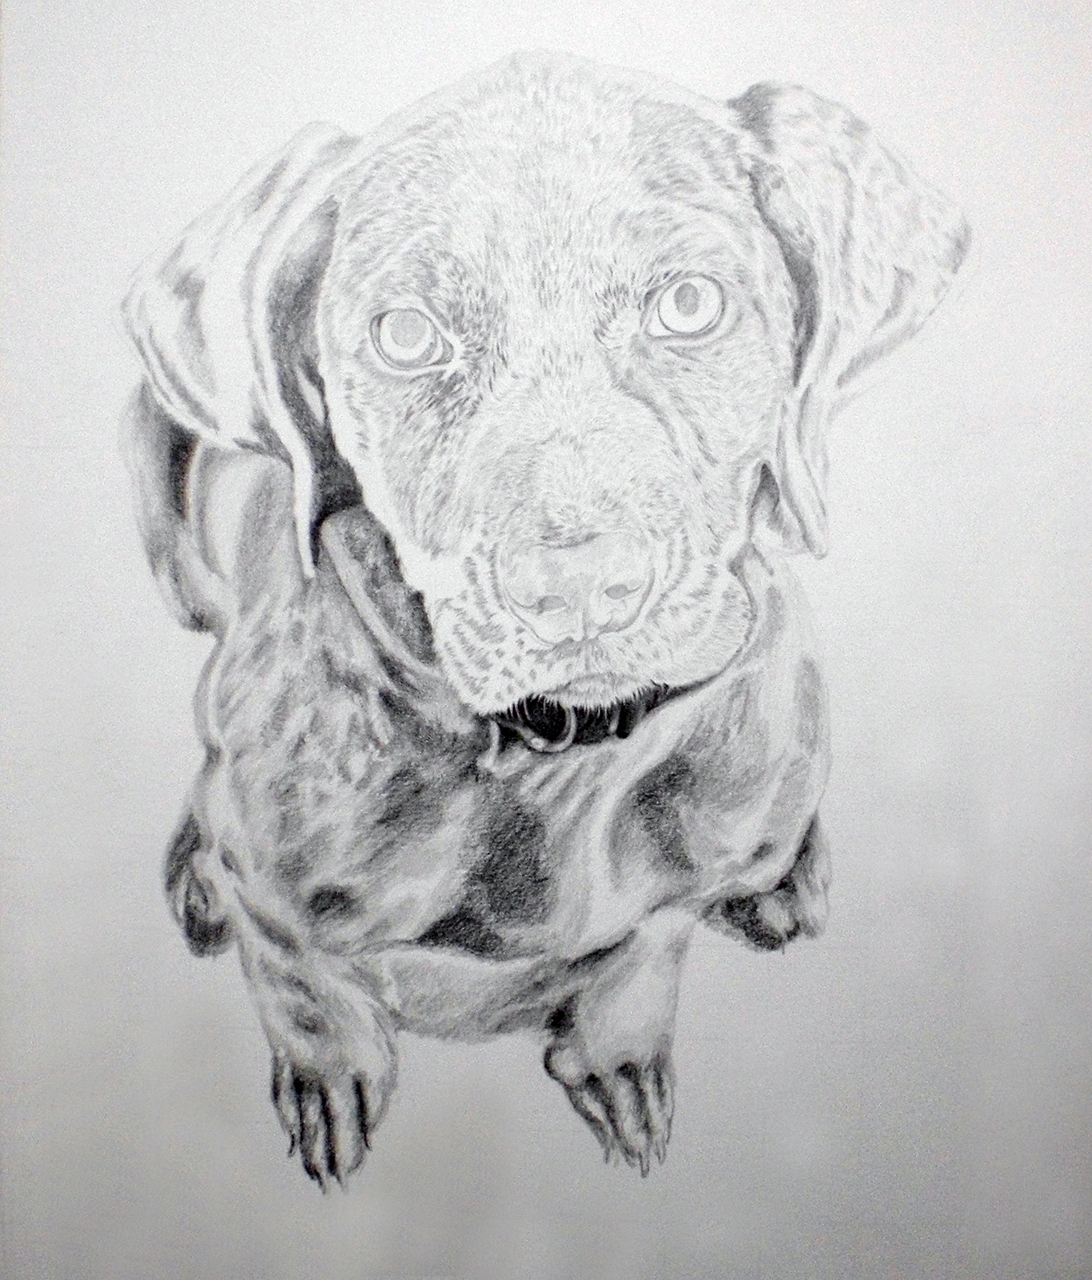 27-03-2017 – Staffordshire Bull Terrier WIP